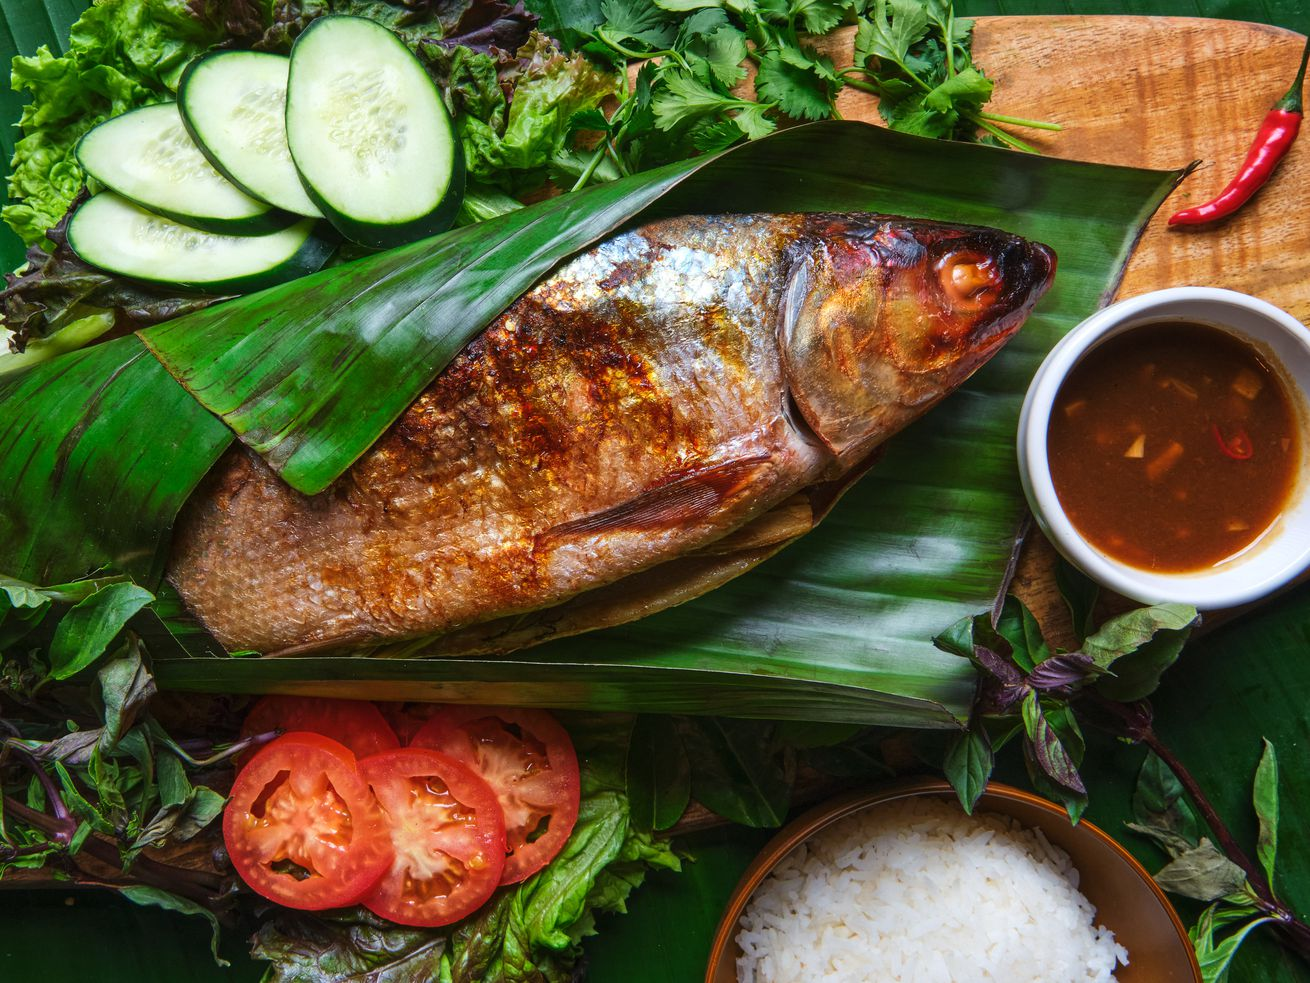 Cooked fish wrapped in banana leaves on a wooden board surrounded by sliced tomatoes, cucumbers, and next to a ramekin of sauce.